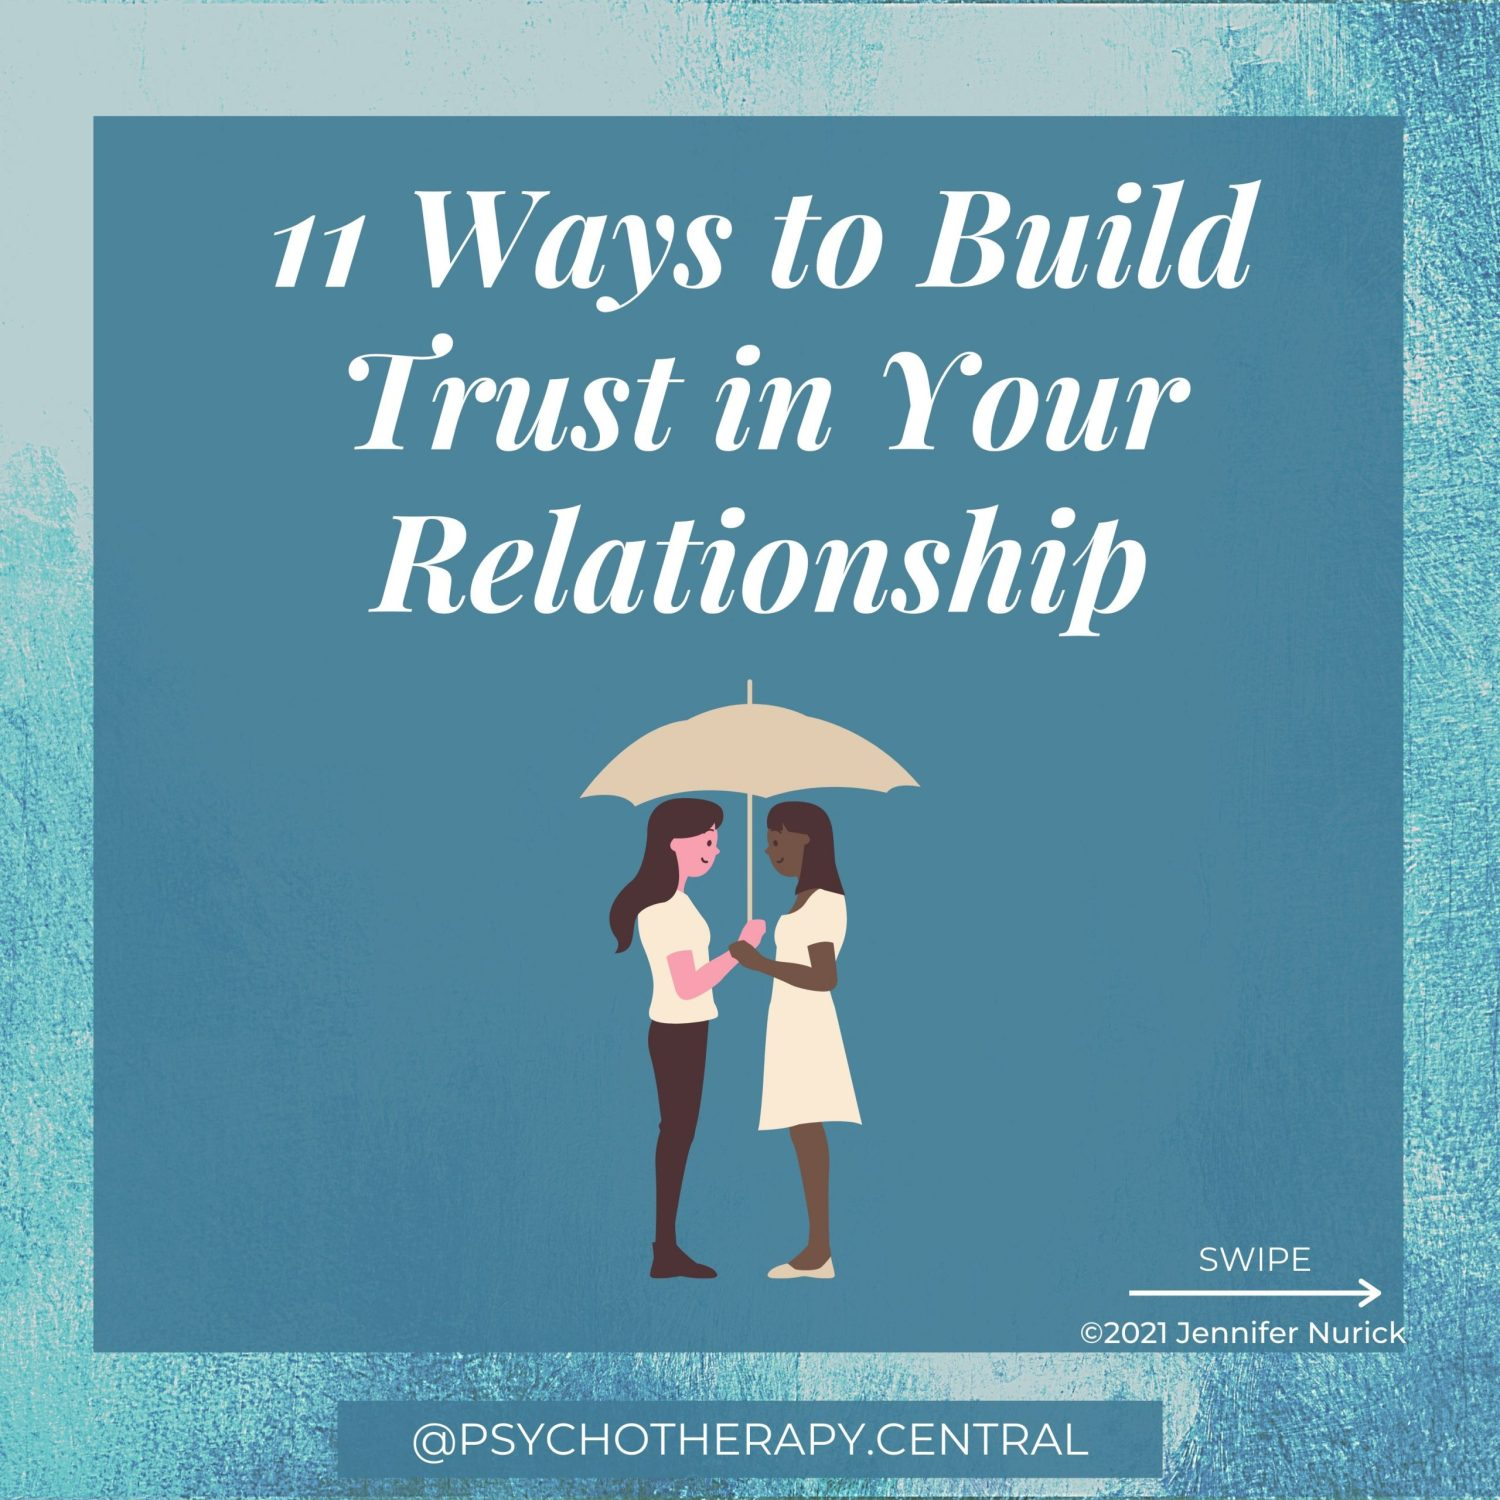 11 ways to build trust in your relationship